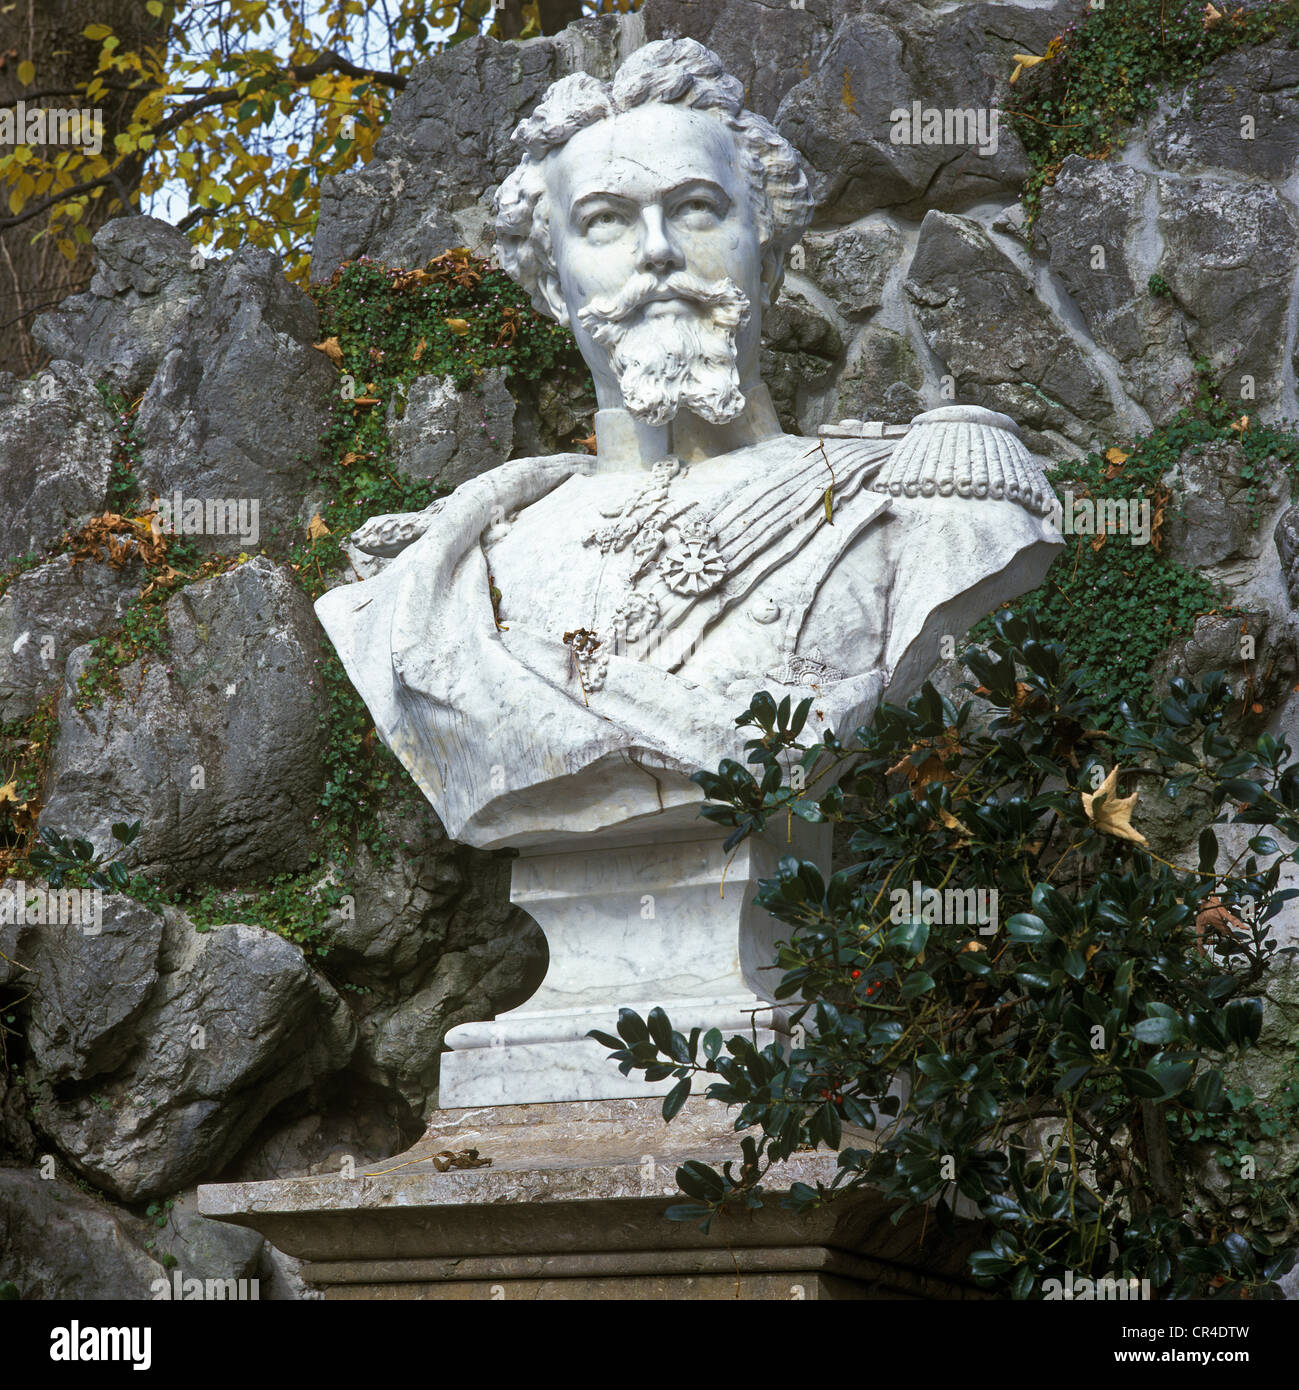 Memorial of King Ludwig II of Bavaria from 1894, first memorial for King Ludwig in Bavaria, Murnau, Upper Bavaria - Stock Image